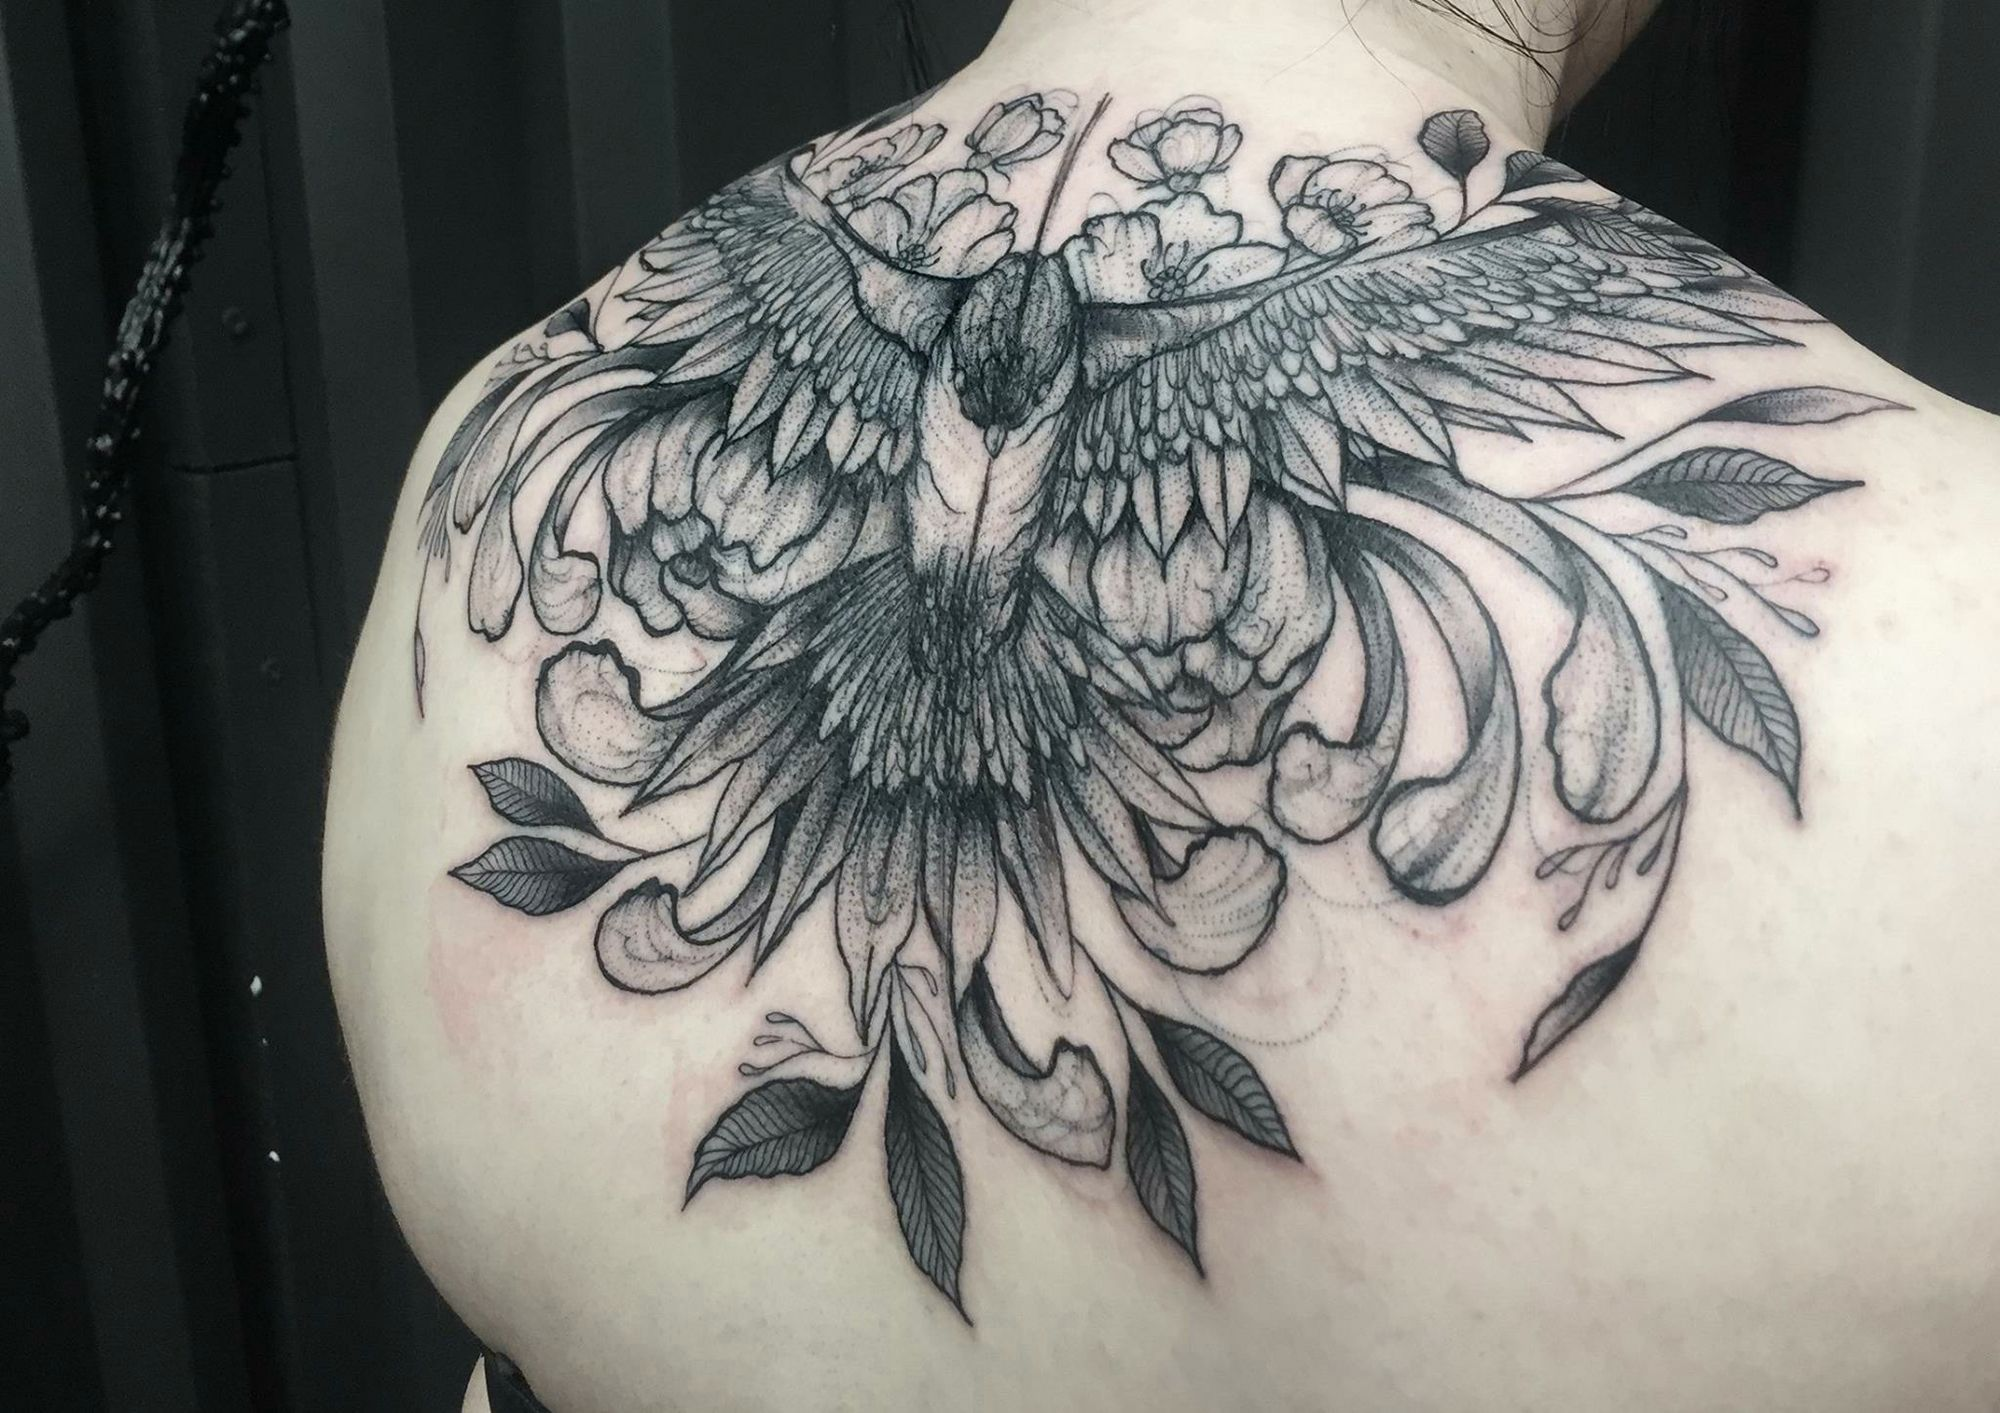 bird tattoo on back, illustrative style